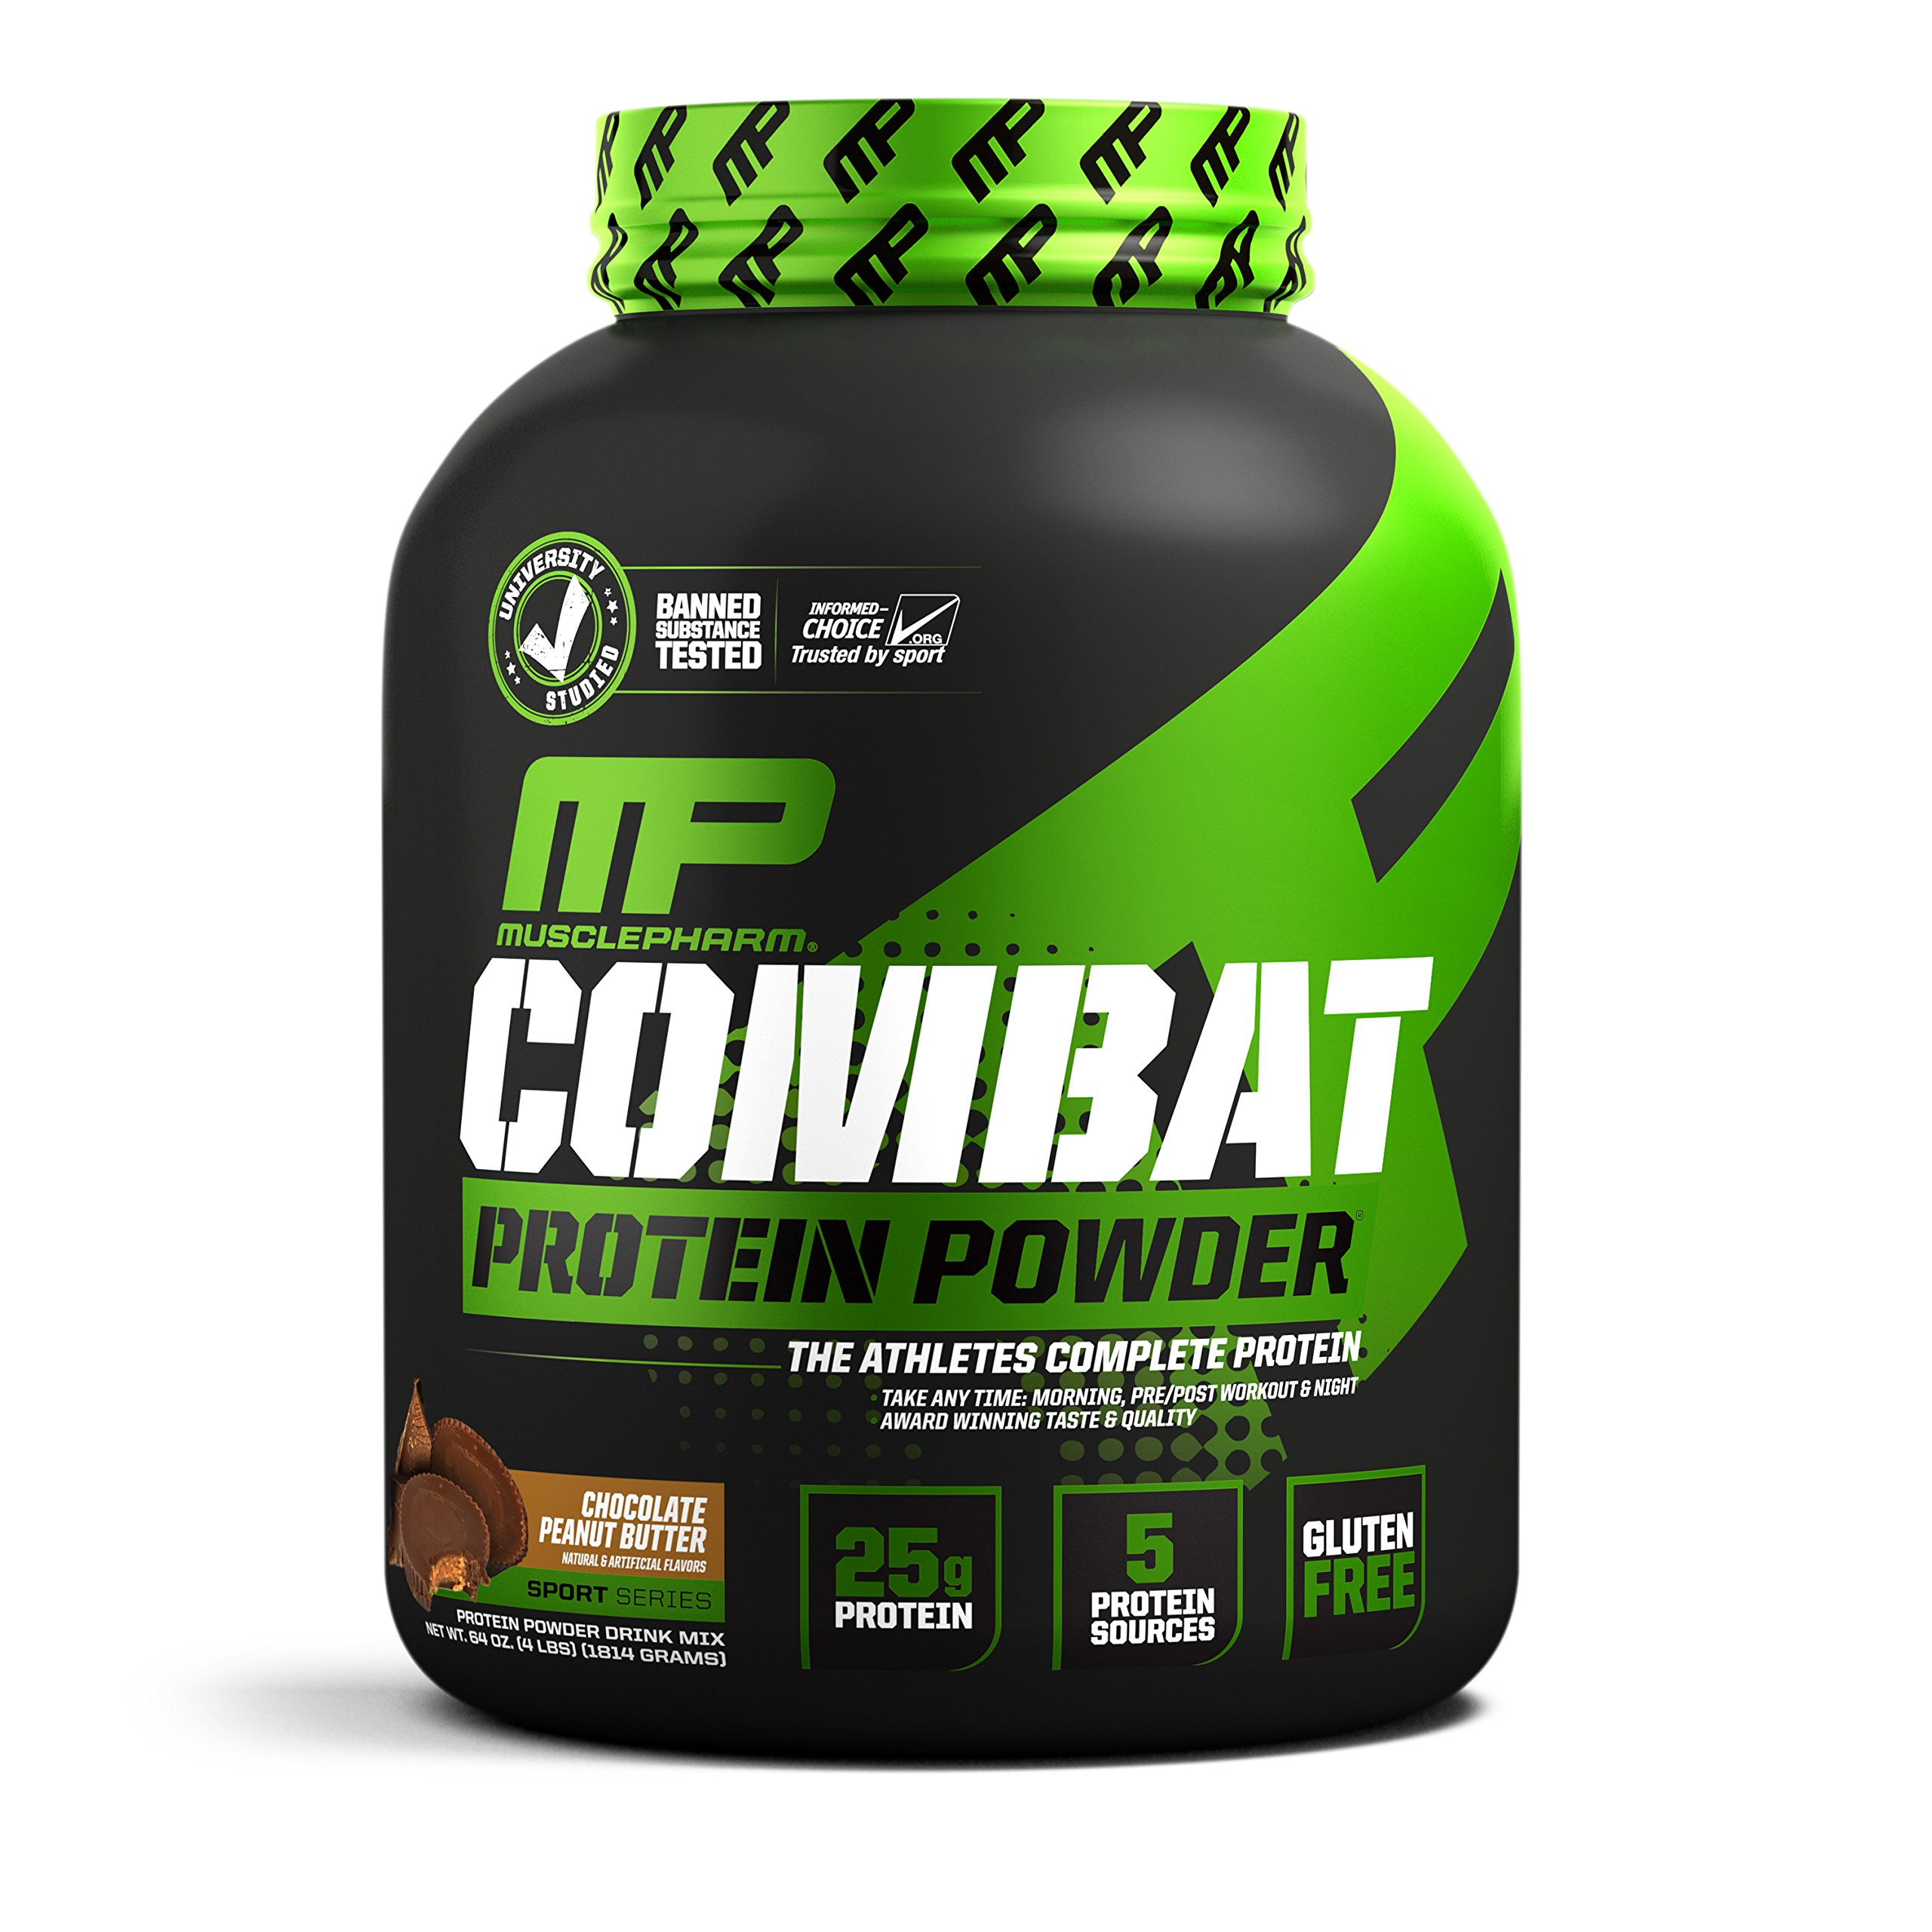 MusclePharm Combat Protein Powder, Essential Whey Protein Powder, Isolate Whey Protein, Casein and Egg Protein with BCAAs and Glutamine for Recovery, Chocolate Peanut Butter, 4-Pound, 52 Servings by Muscle Pharm